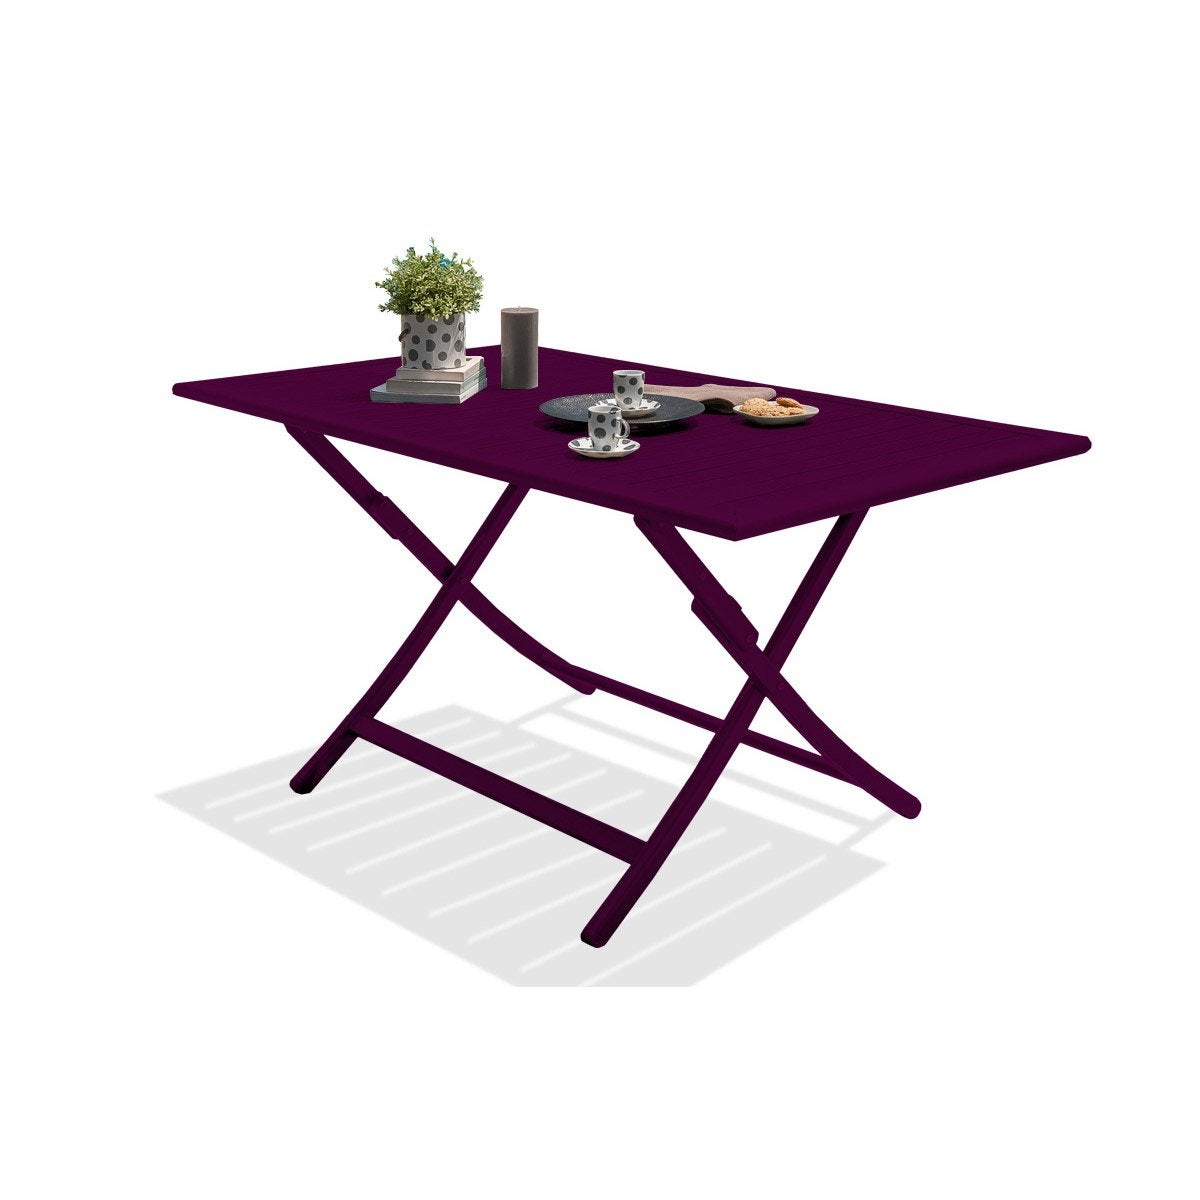 Table de jardin marius rectangulaire aubergine 4 6 for Table de salon petite taille